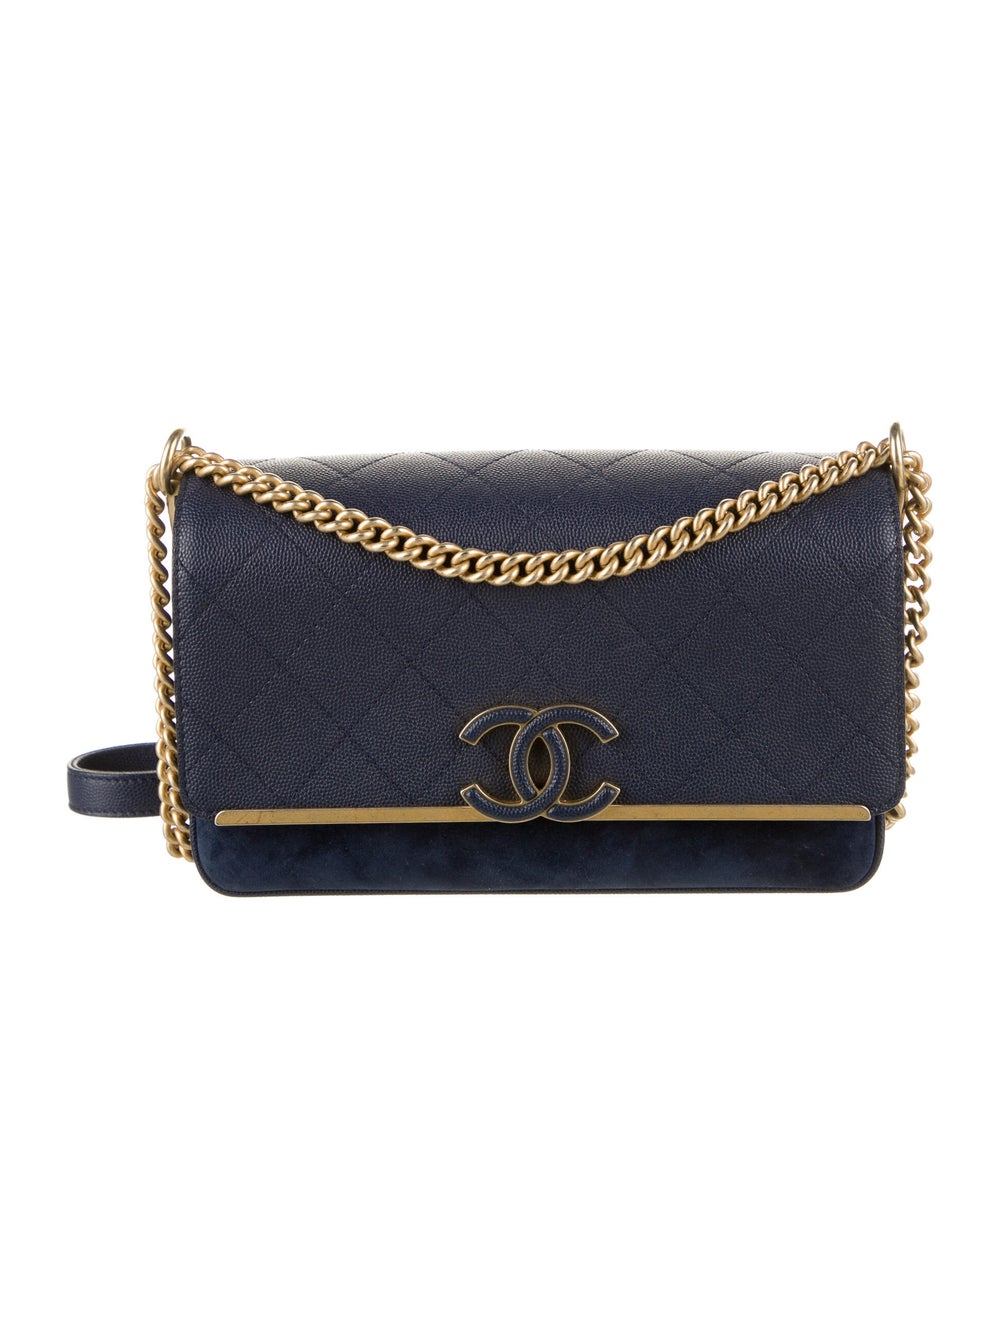 Chanel Chanel Lady Coco Flap Bag Blue - image 1